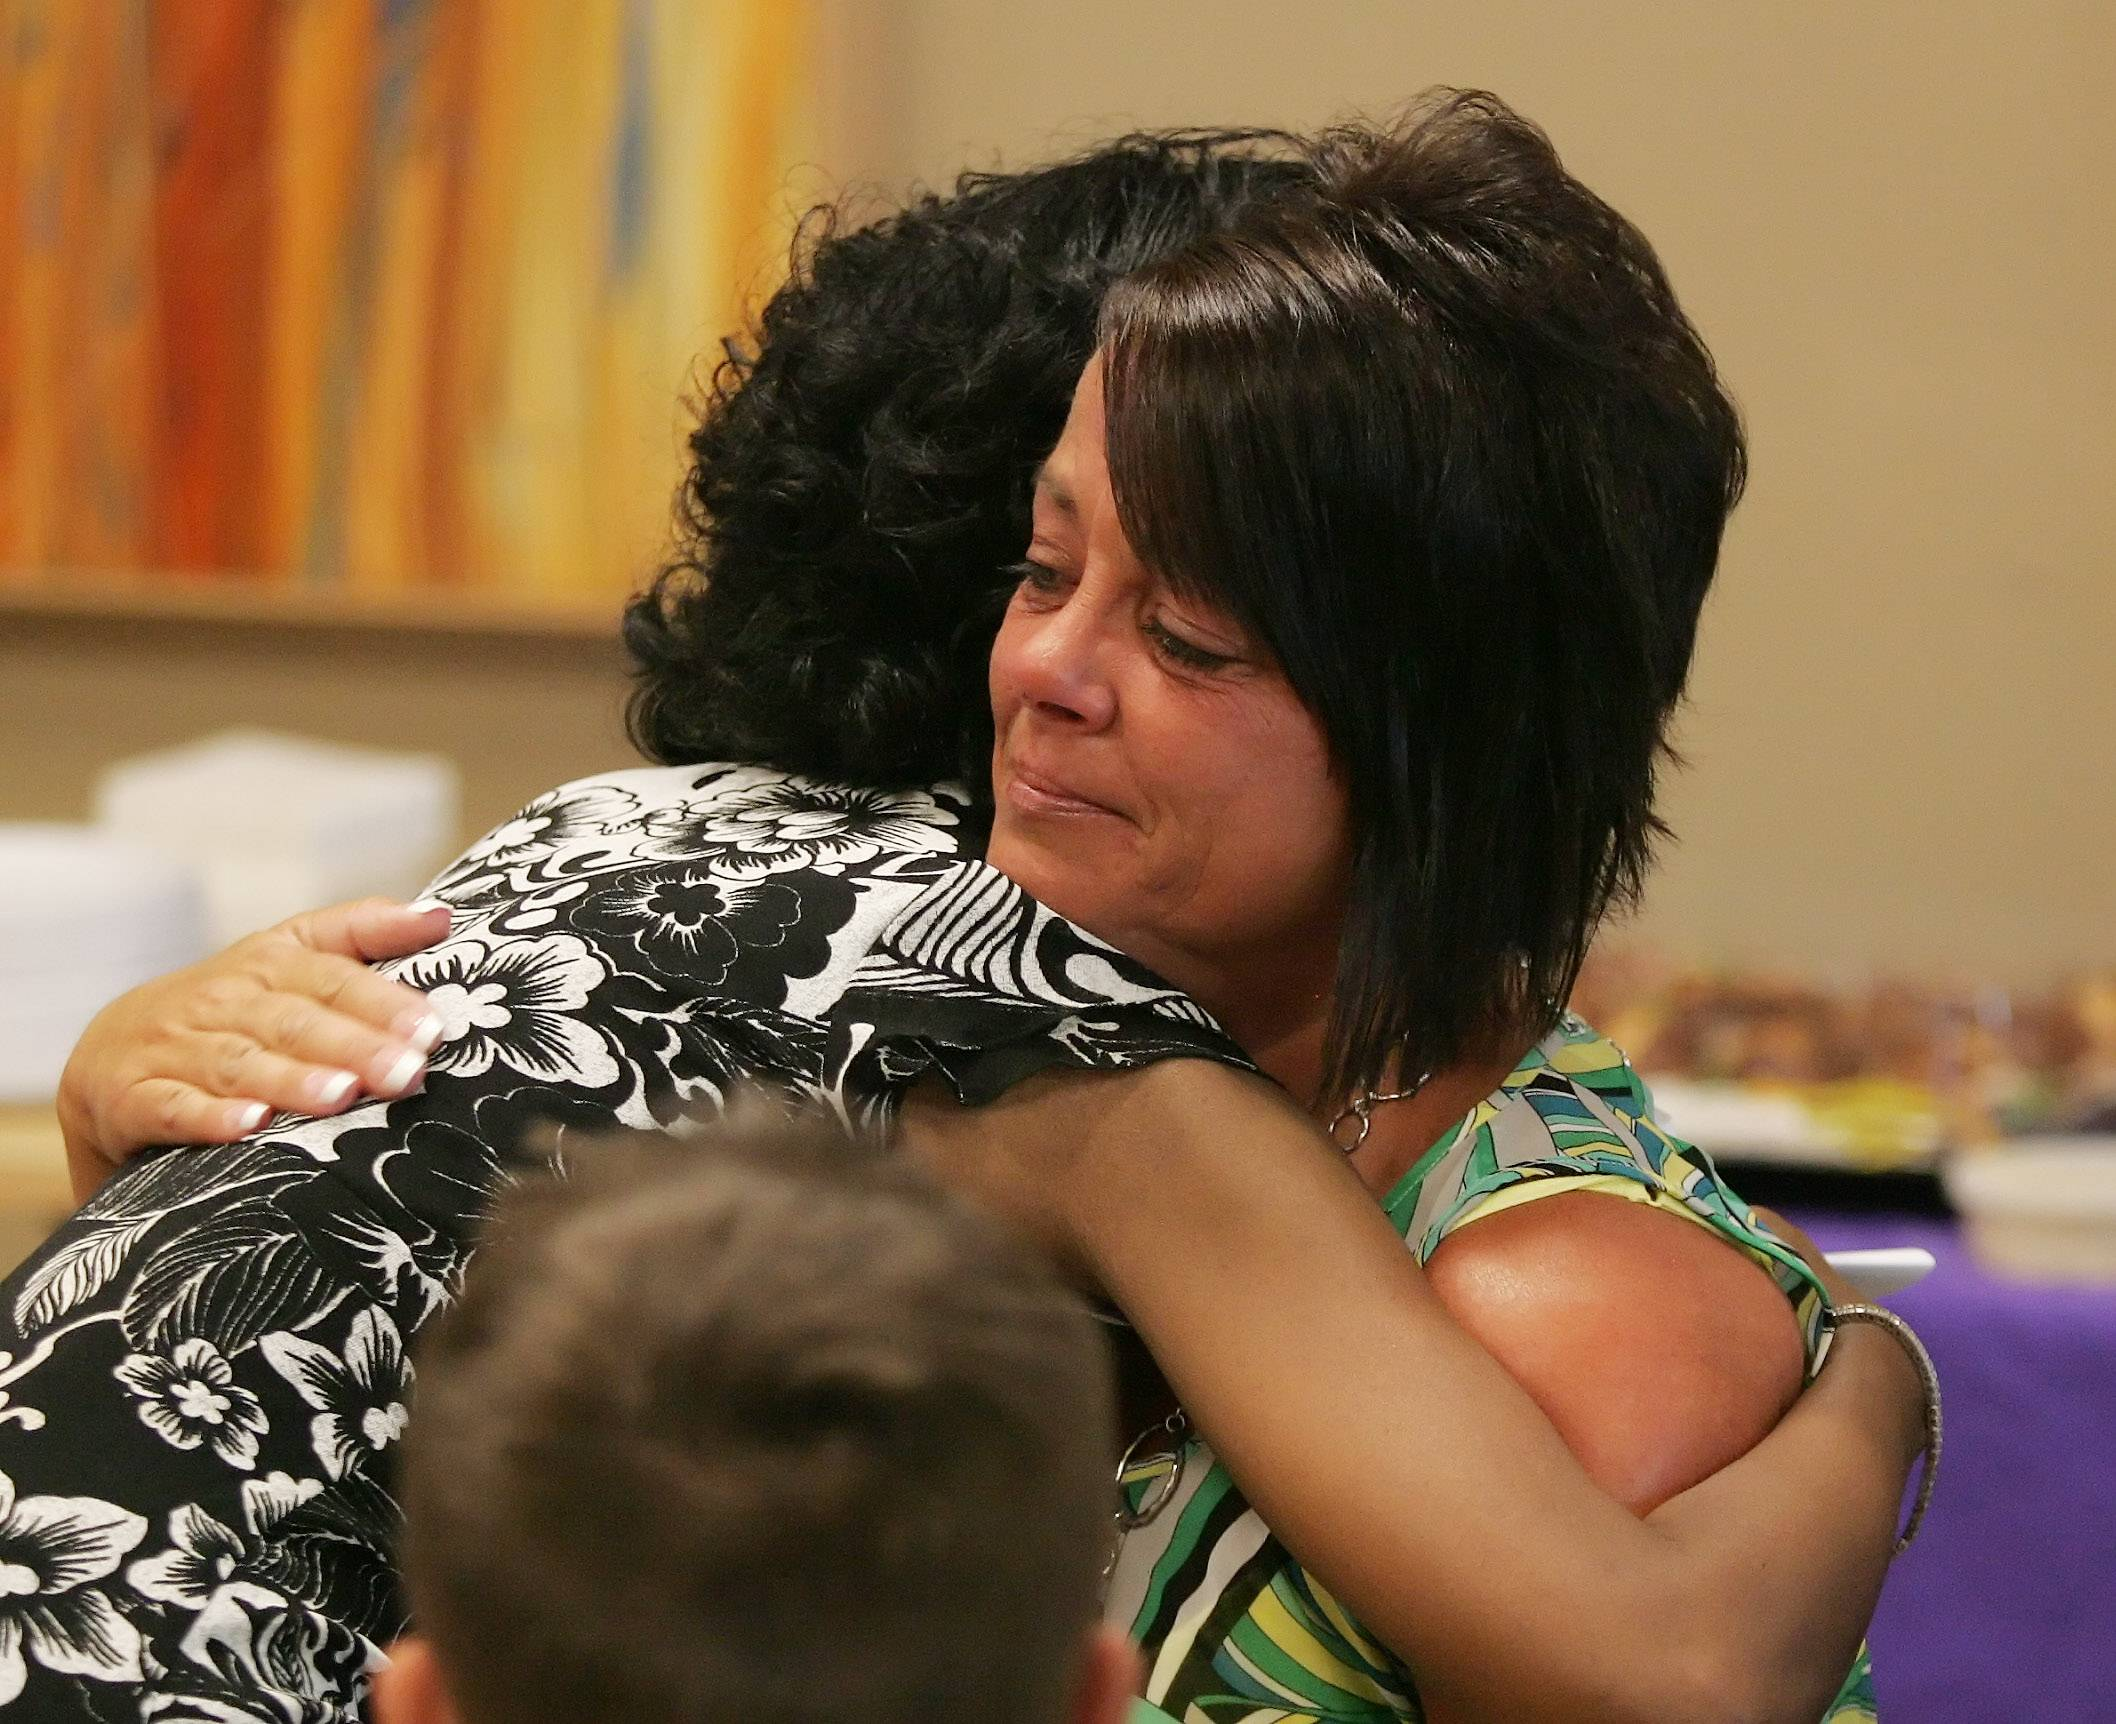 Heart transplant patient Melody McIntosh, left, hugs Kelly Swart — mother of Ashley Swart, who donated her heart — during a meeting Monday at Advocate Condell Medical Center in Libertyville. Swart was a 20-year-old Purdue student who died suddenly in 2013; she donated several organs including the heart that saved McIntosh.